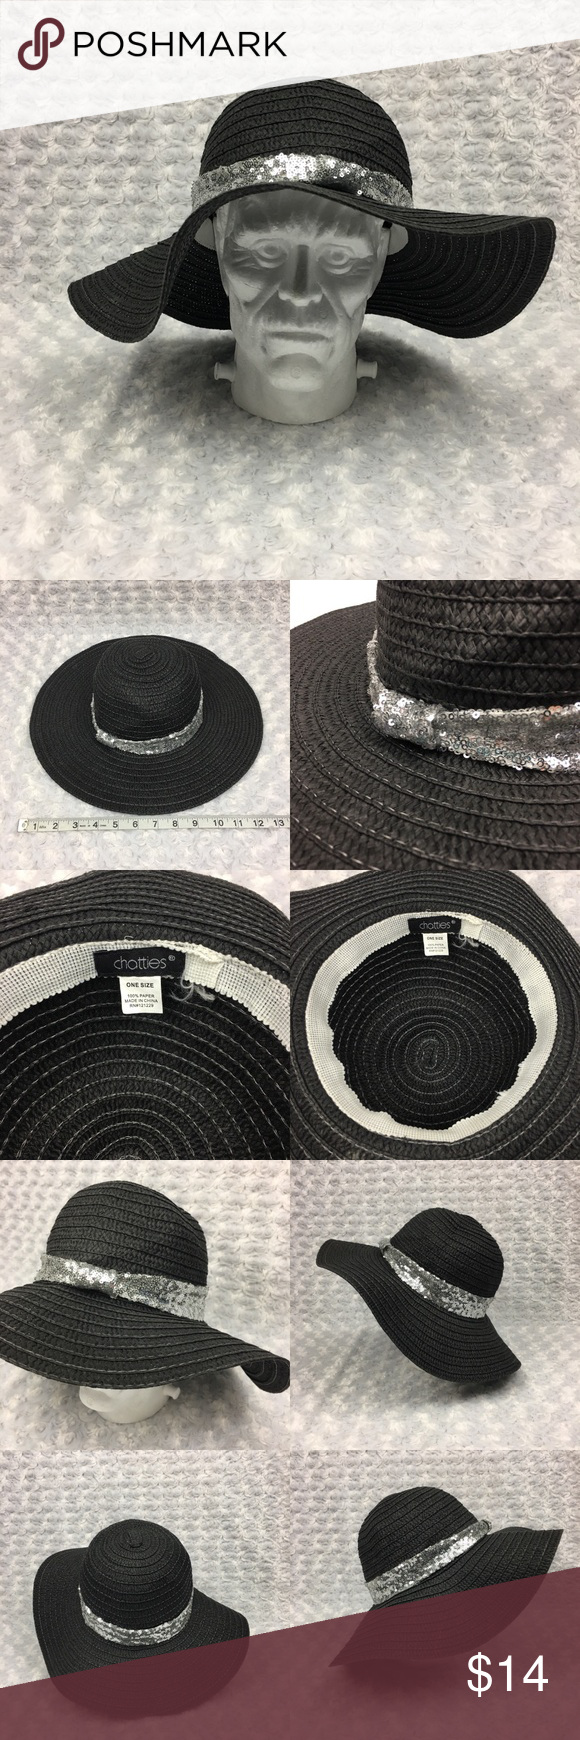 03c2d407589 Floppy Wicker Hat w Silver Sequins RN 121229 Chatties Brand Black Floppy Wicker  Hat with Silver Sequins One Size RN 121229 Size  One Size Condition  Gently  ...